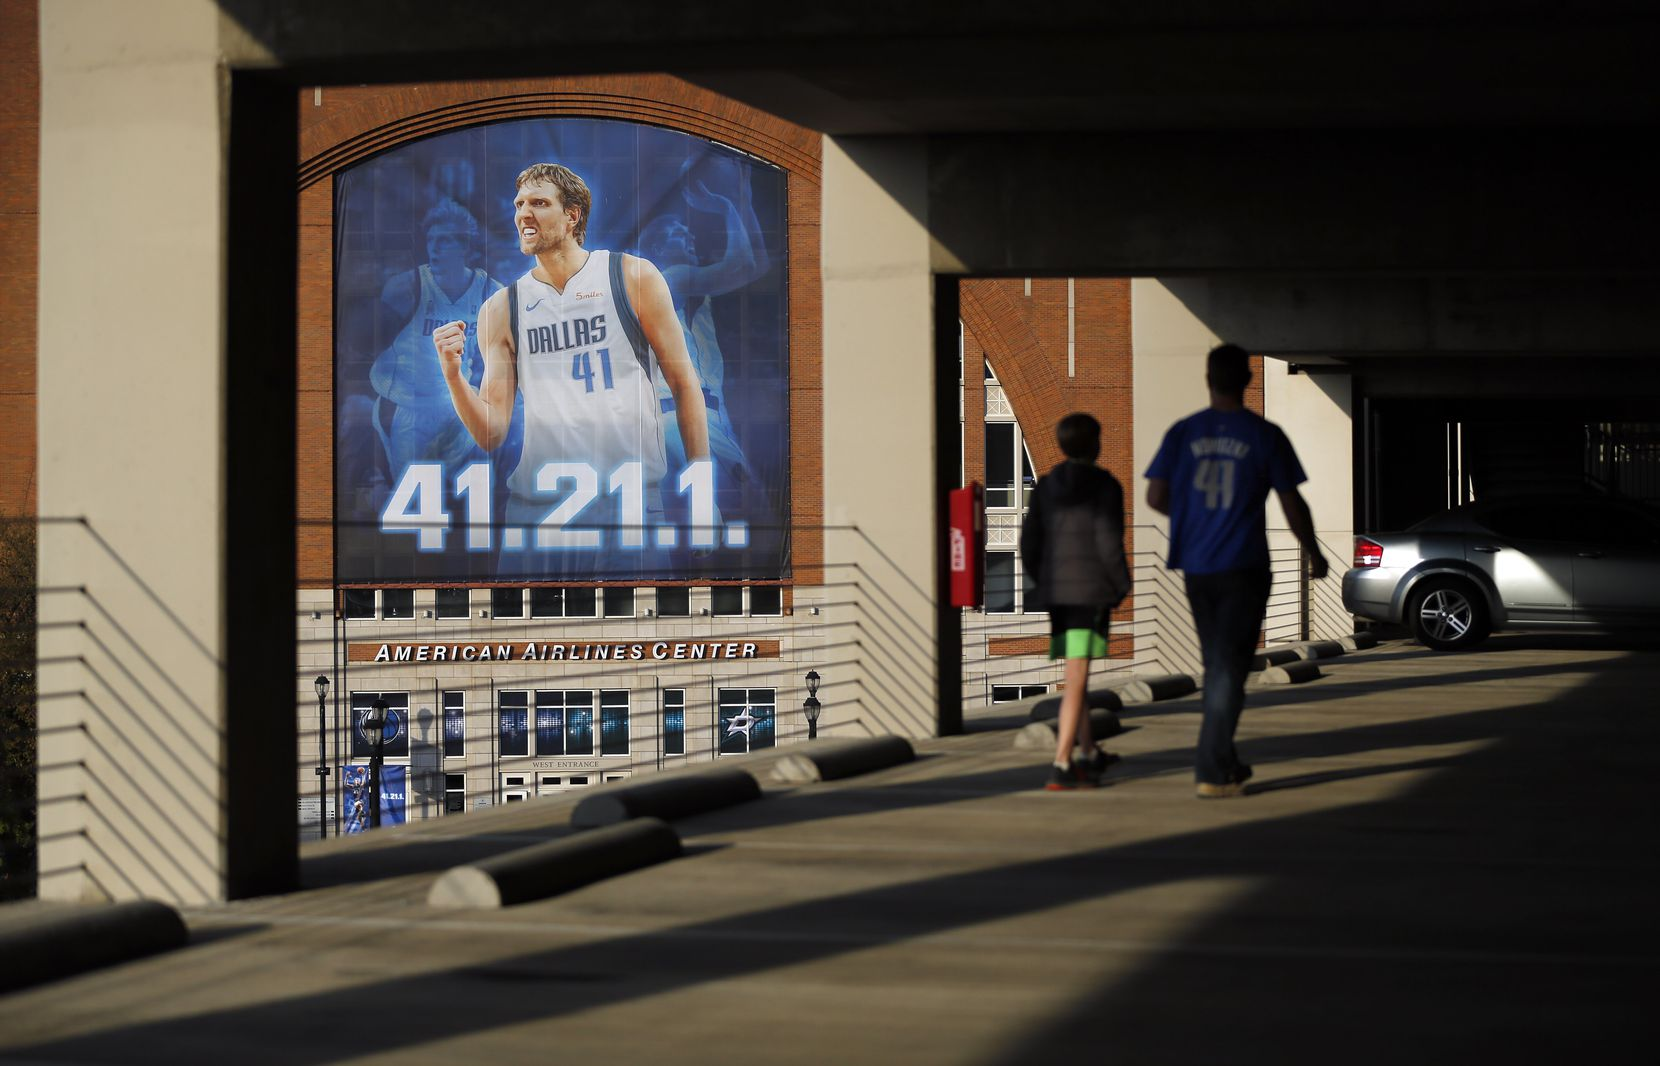 Dallas Mavericks fans Matt Pair of Waco and his 11-year-old son, Layton, viewed the All-Star forward Dirk Nowitzki plastered across the front of the American Airlines Center from the parking garage as they arrived for the game April 5, 2019. No. 41 has played 21 years with 1 team.